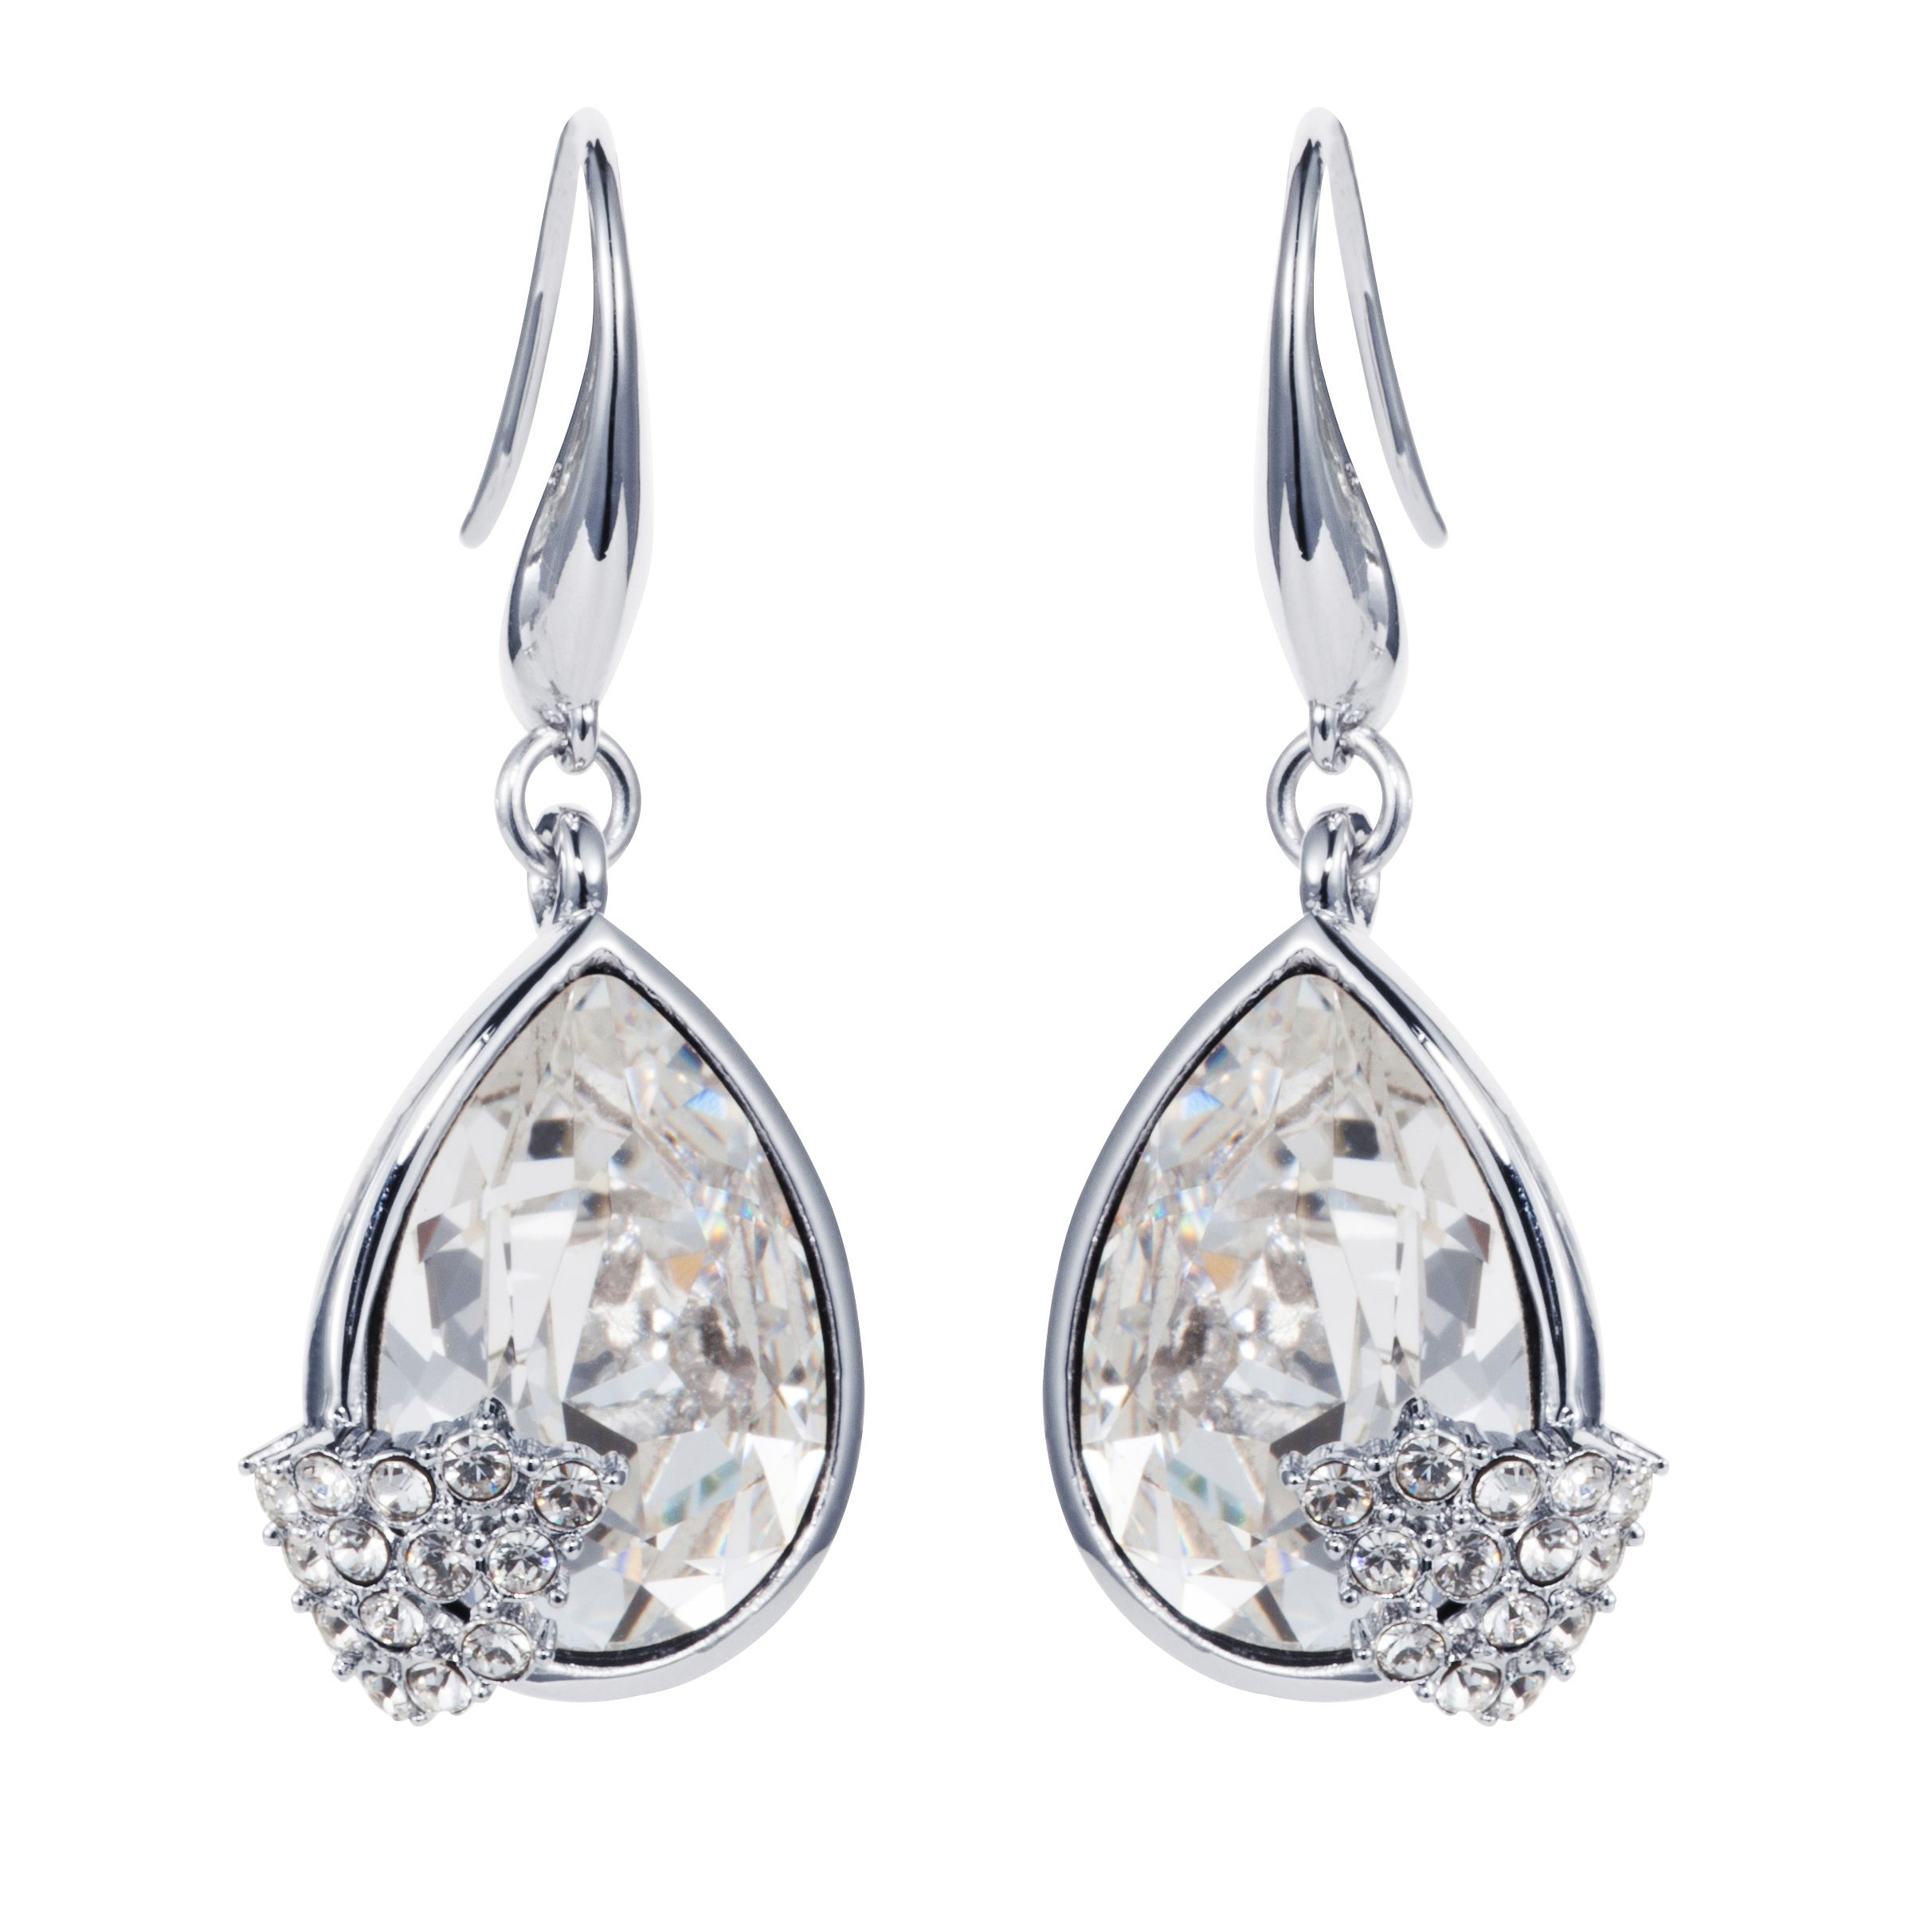 Rhodium plated titania pear cut earrings